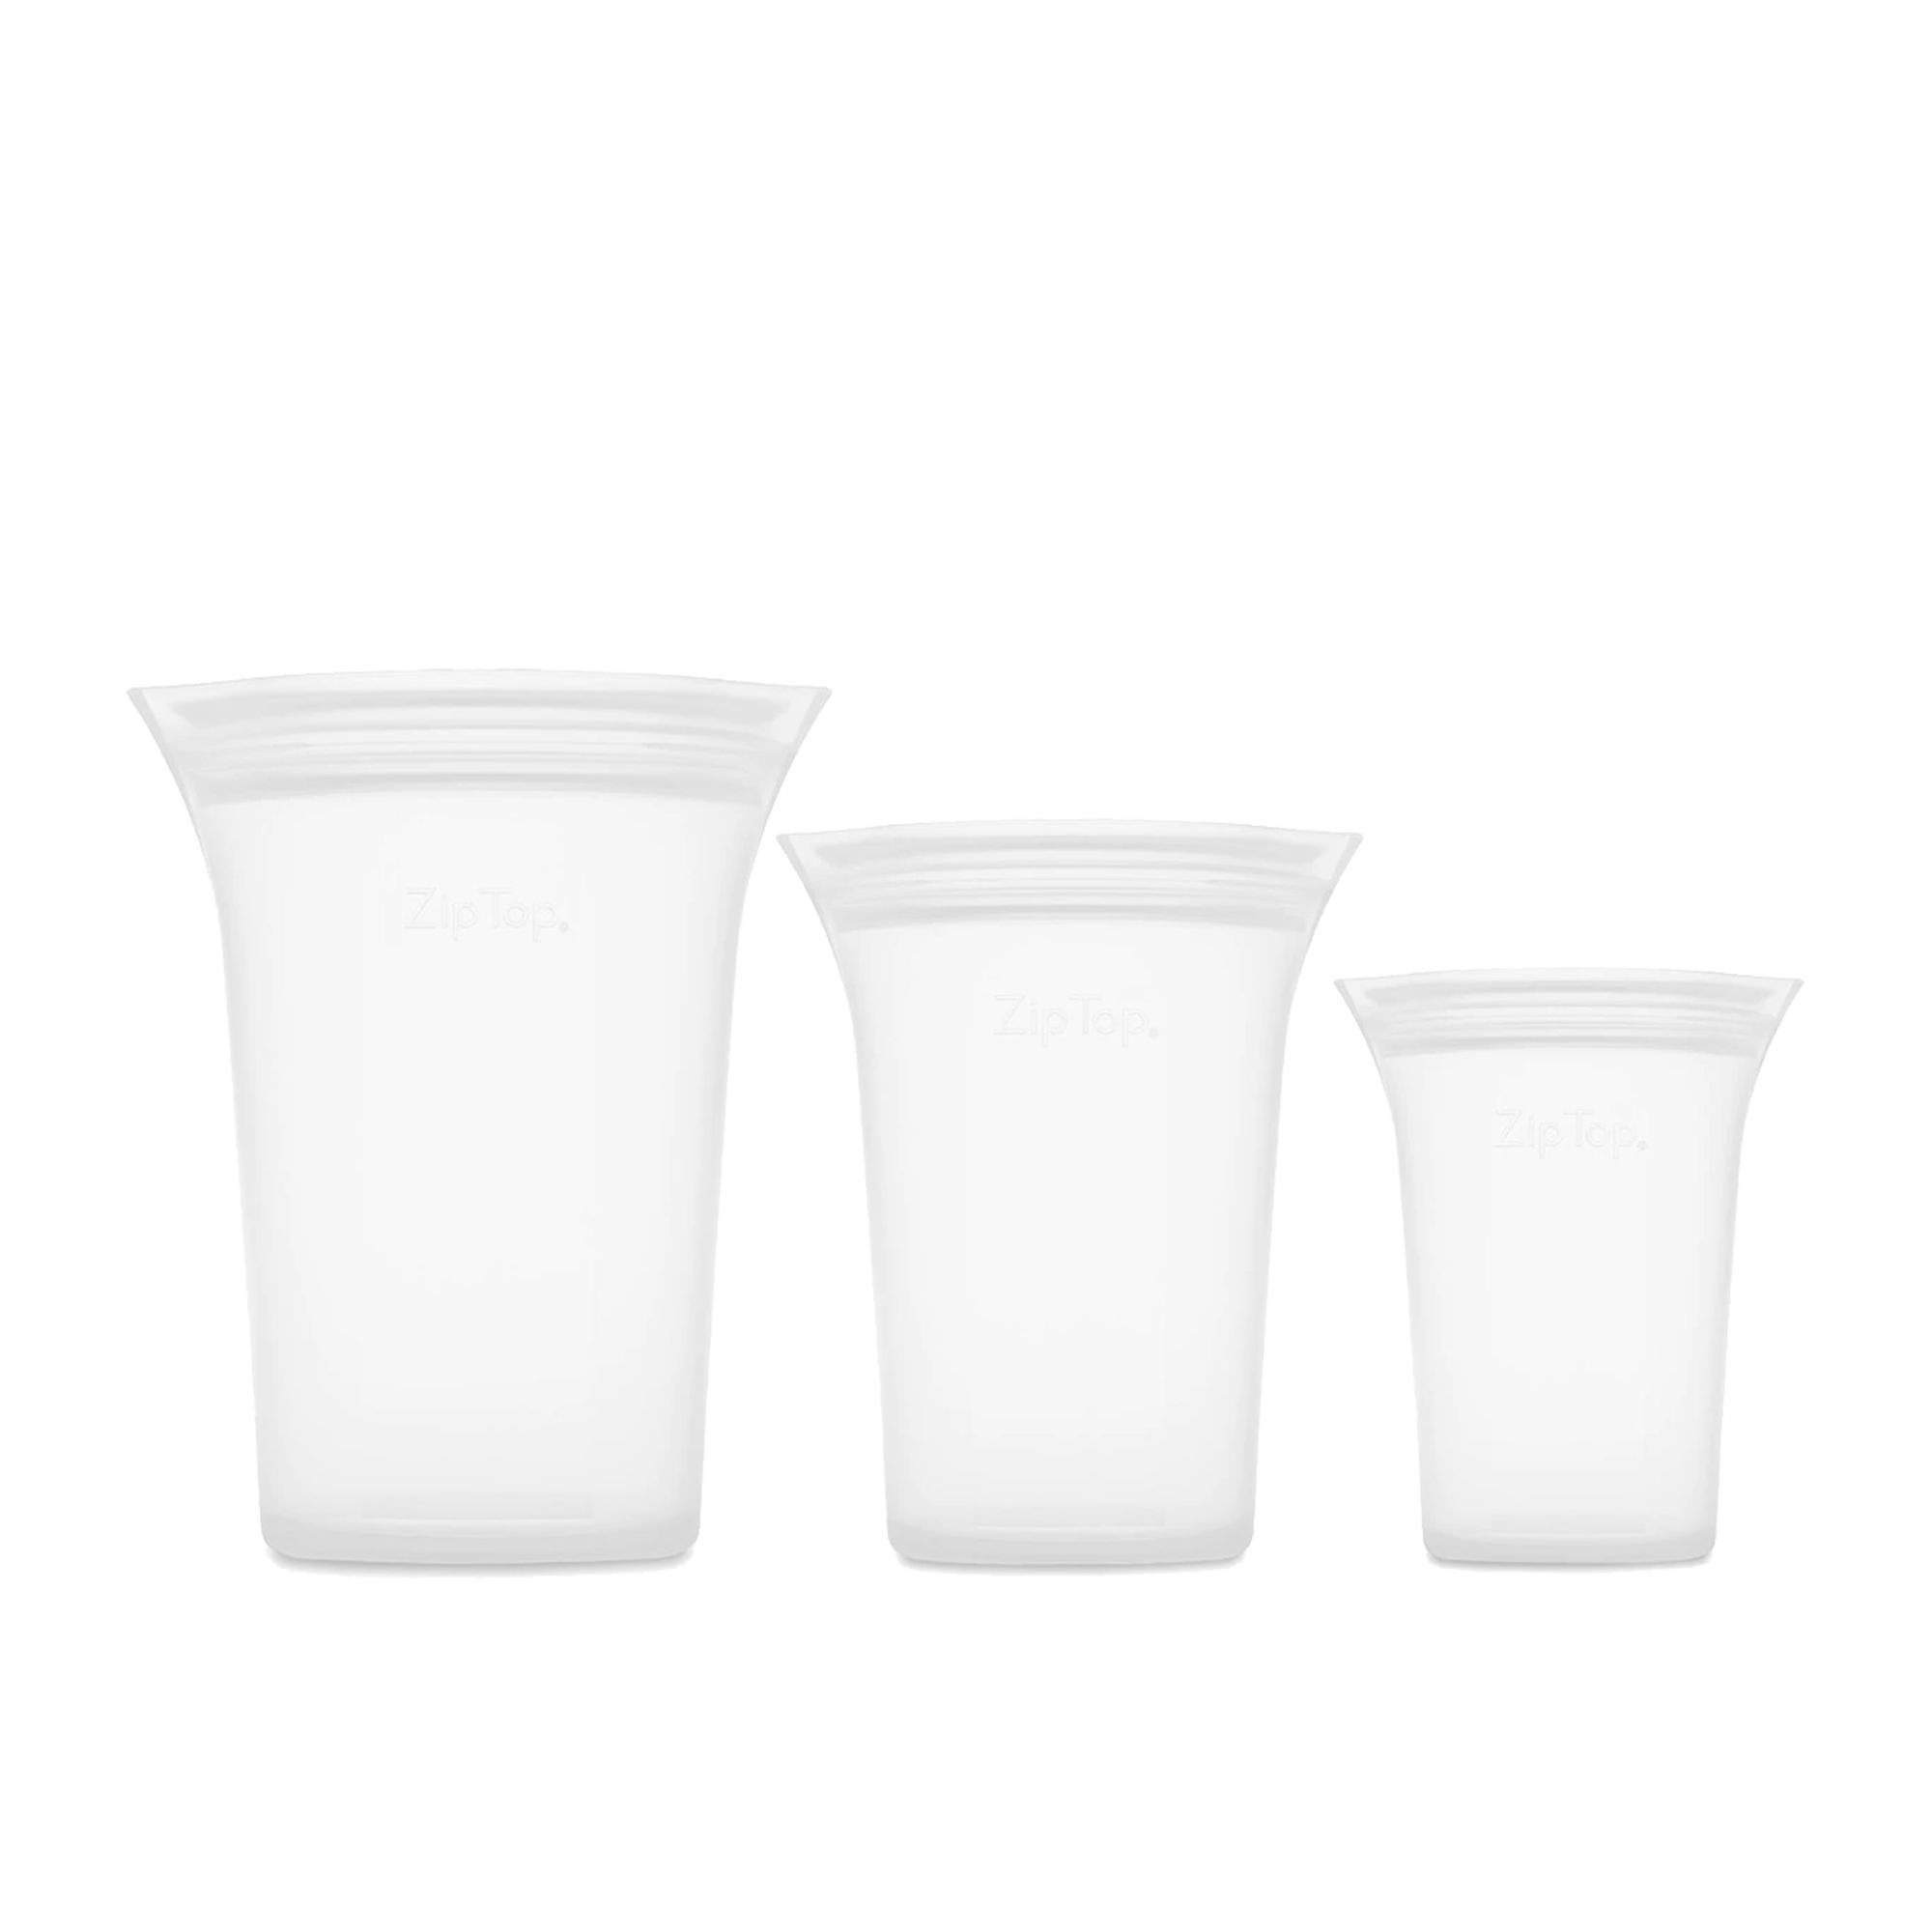 Zip Top 3pc Platinum Silicone Cup Container Set Clear